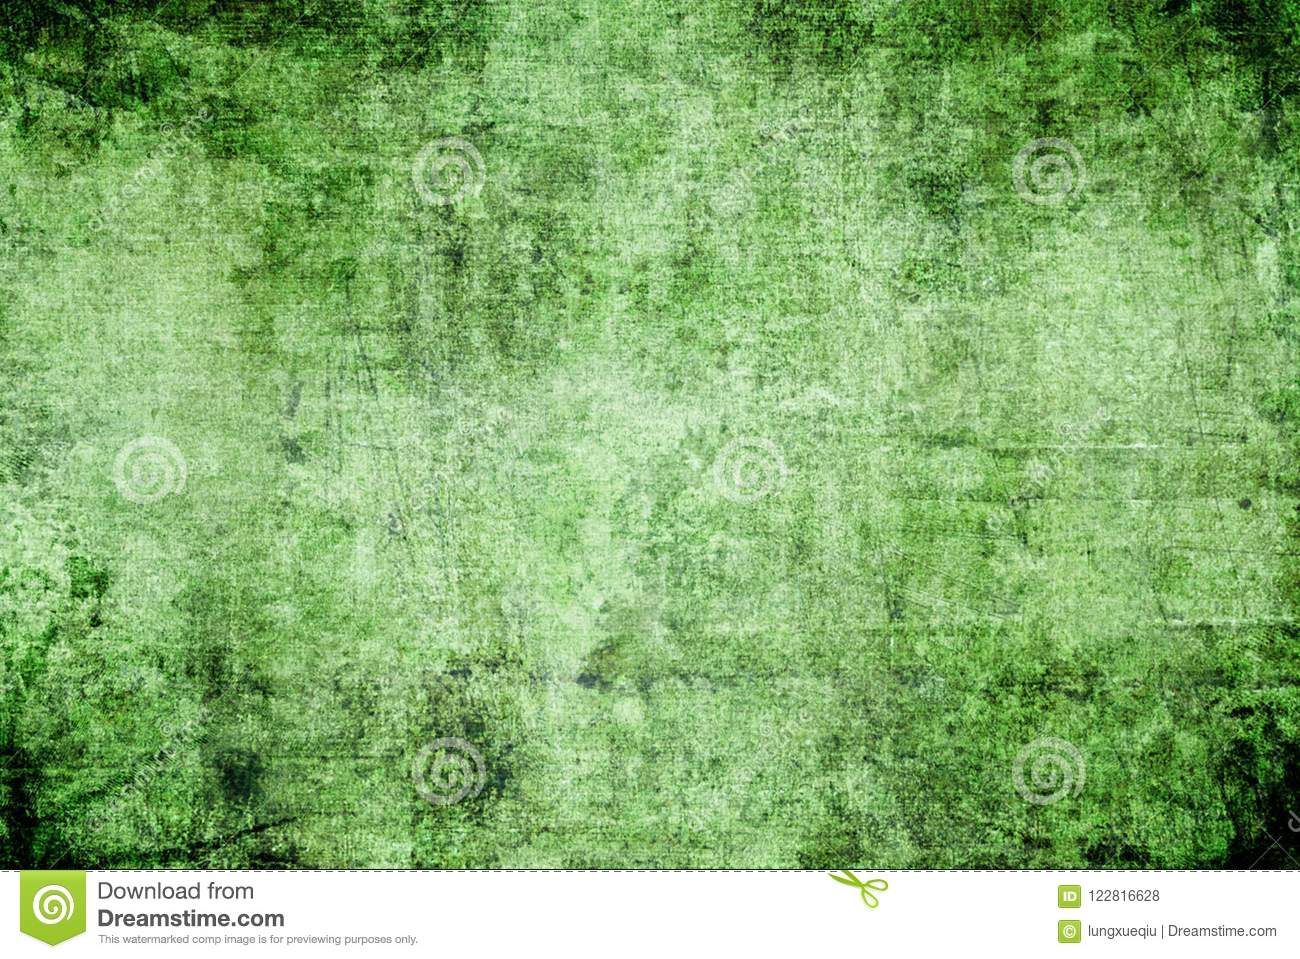 Grunge Dark Green Black Rusty Distorted Decay Old Abstract Canvas Painting Texture Pattern for Autumn Background Wallpaper